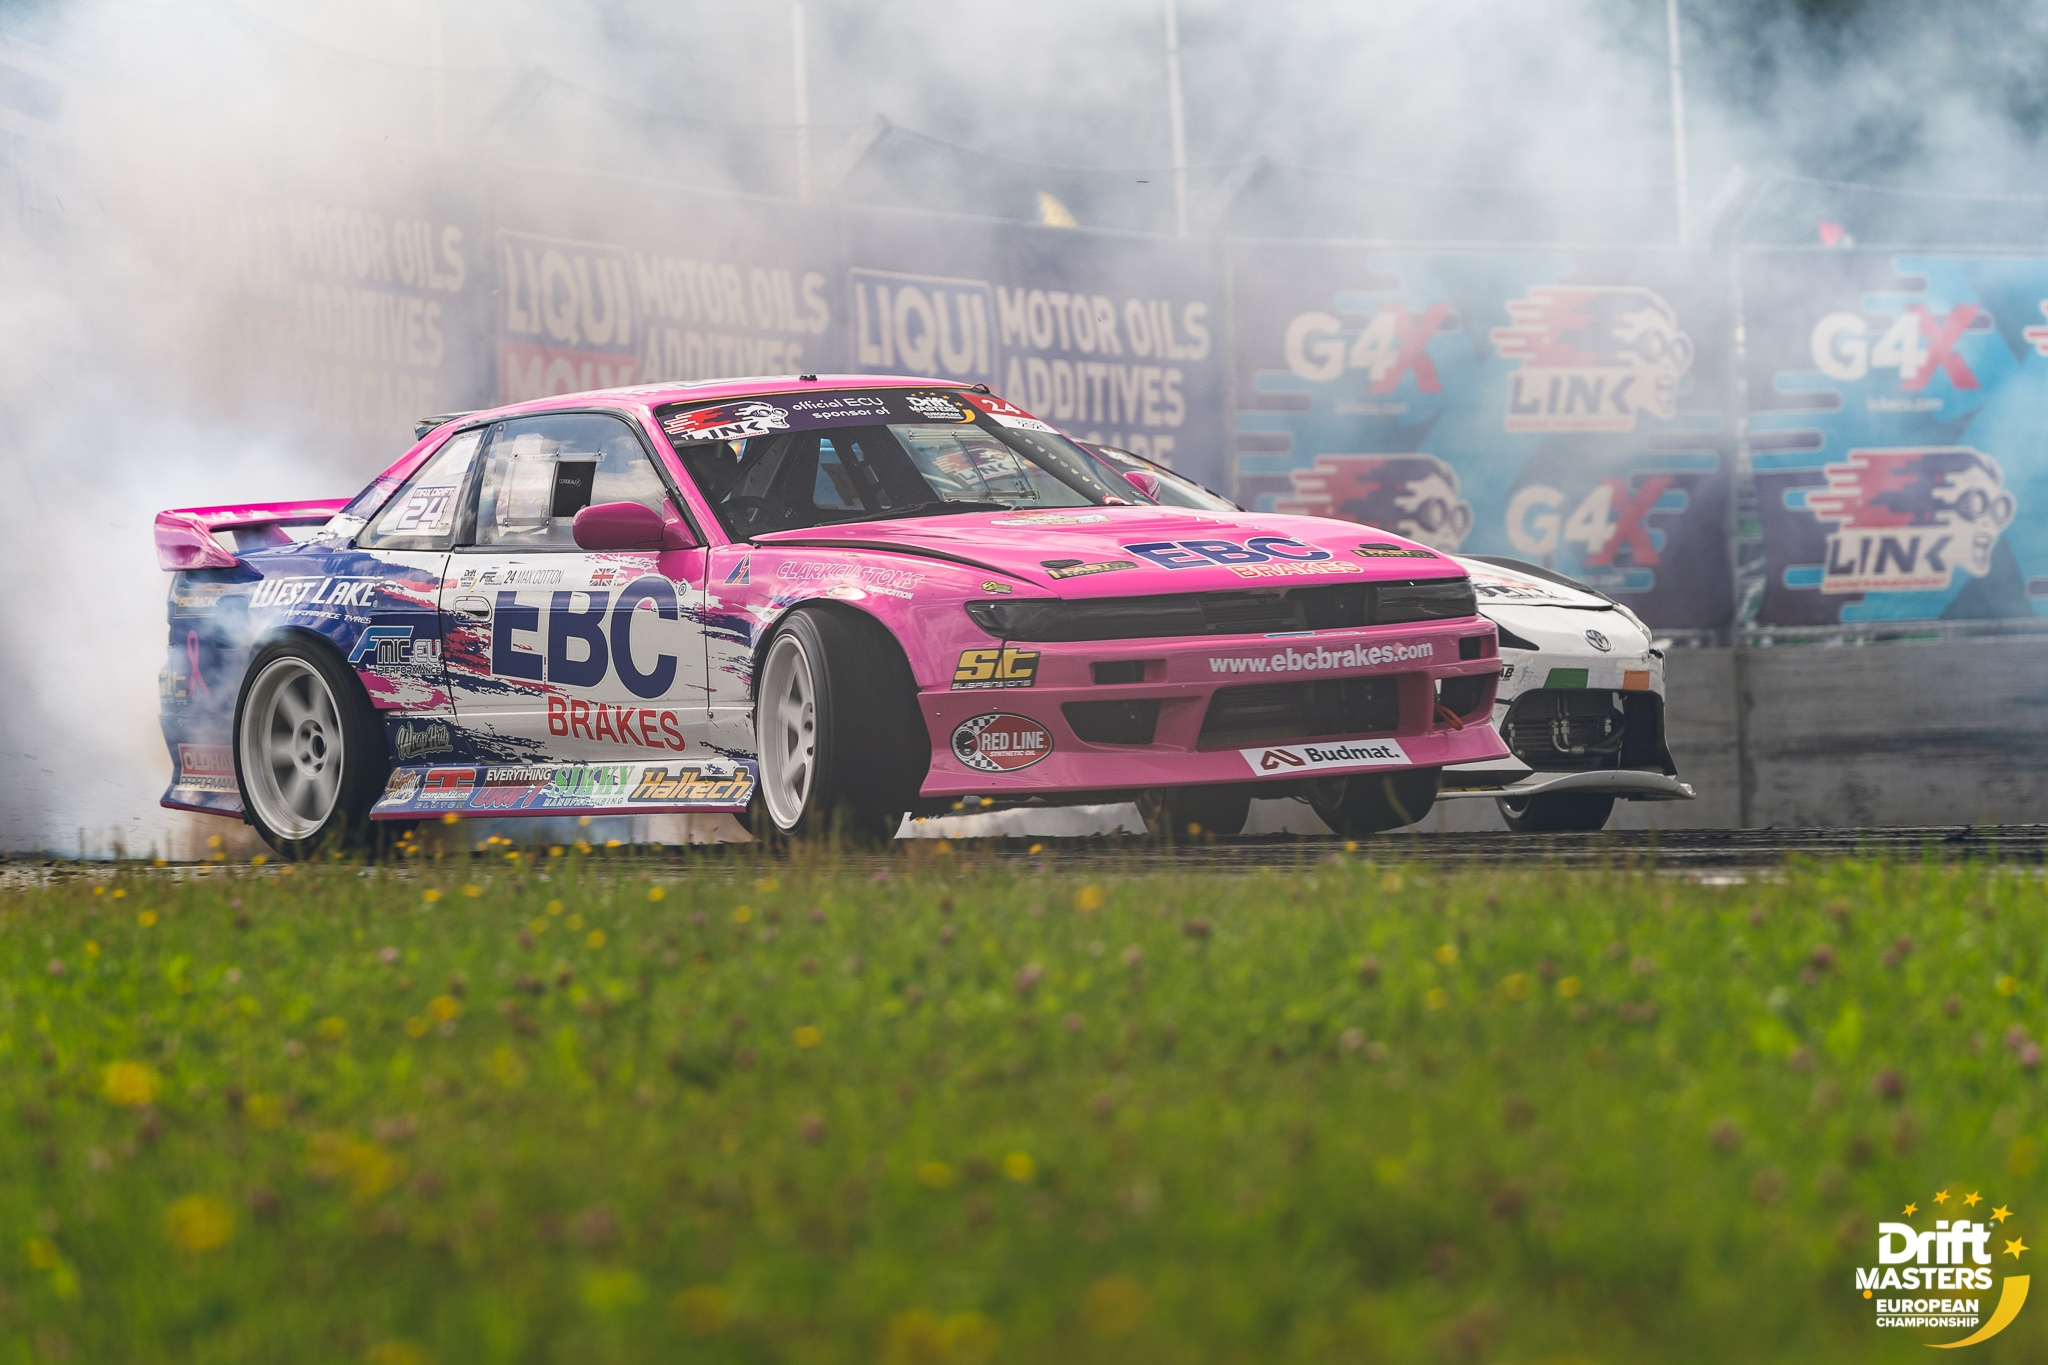 Max Cotton Battles the Best in Final Drift Masters Round in Latvia